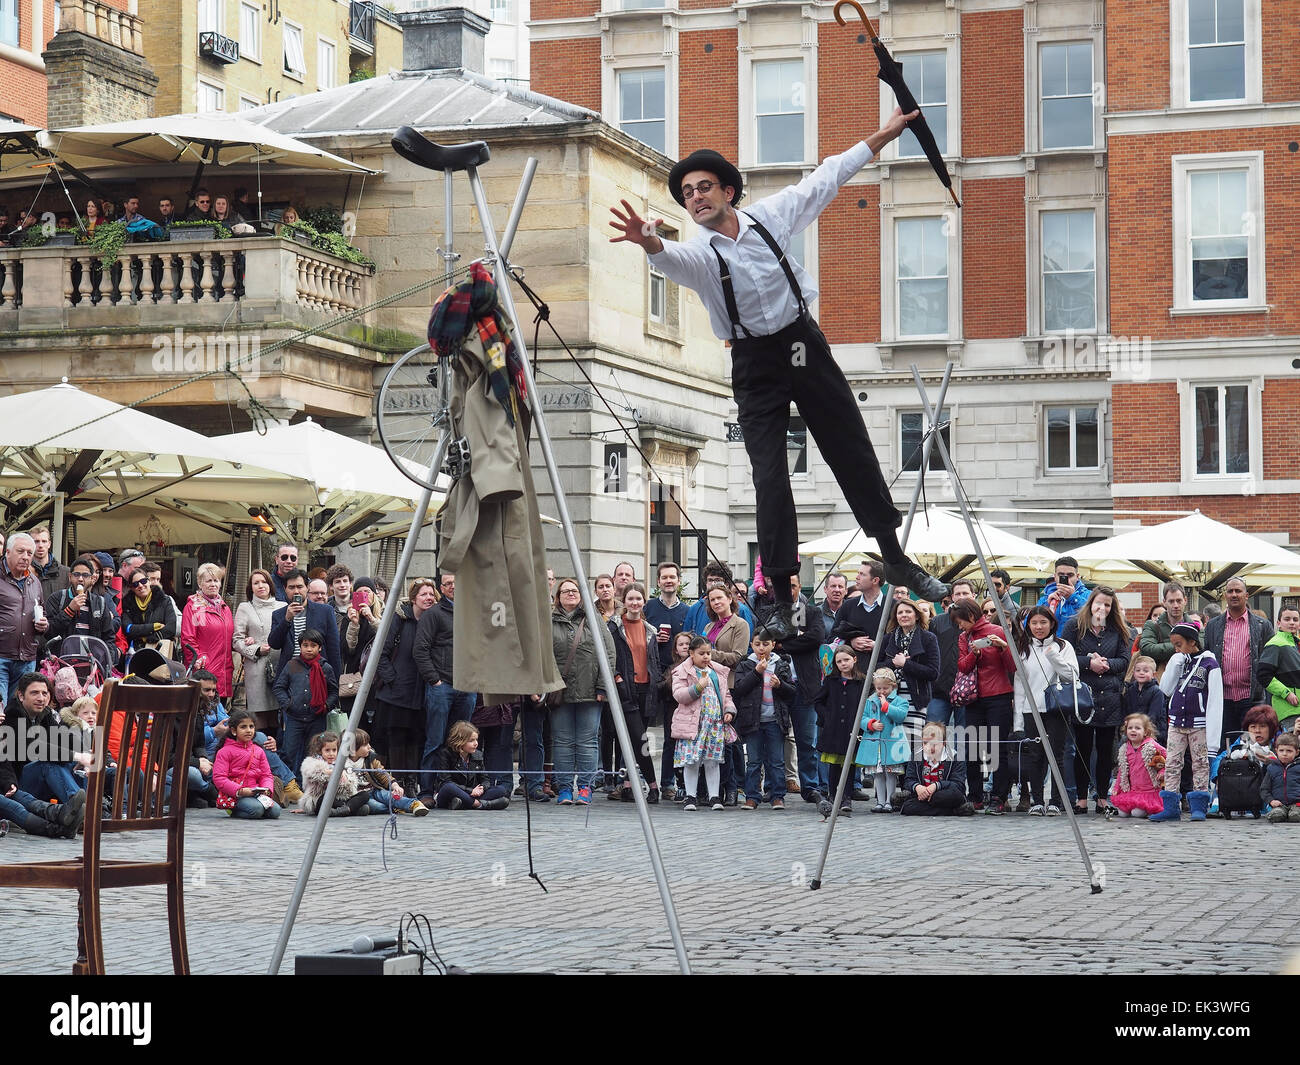 Marvellous Covent Garden Stock Photos  Covent Garden Stock Images  Alamy With Exciting A Tightrope Walker Entertaining A Crowd In Covent Garden London Uk  Stock  Image With Lovely Monty Don Garden Also Crusoe Garden Rooms In Addition Wickes Garden And Topshop Covent Garden As Well As Garden Lantern Lights Additionally Burger Restaurant Covent Garden From Alamycom With   Exciting Covent Garden Stock Photos  Covent Garden Stock Images  Alamy With Lovely A Tightrope Walker Entertaining A Crowd In Covent Garden London Uk  Stock  Image And Marvellous Monty Don Garden Also Crusoe Garden Rooms In Addition Wickes Garden From Alamycom